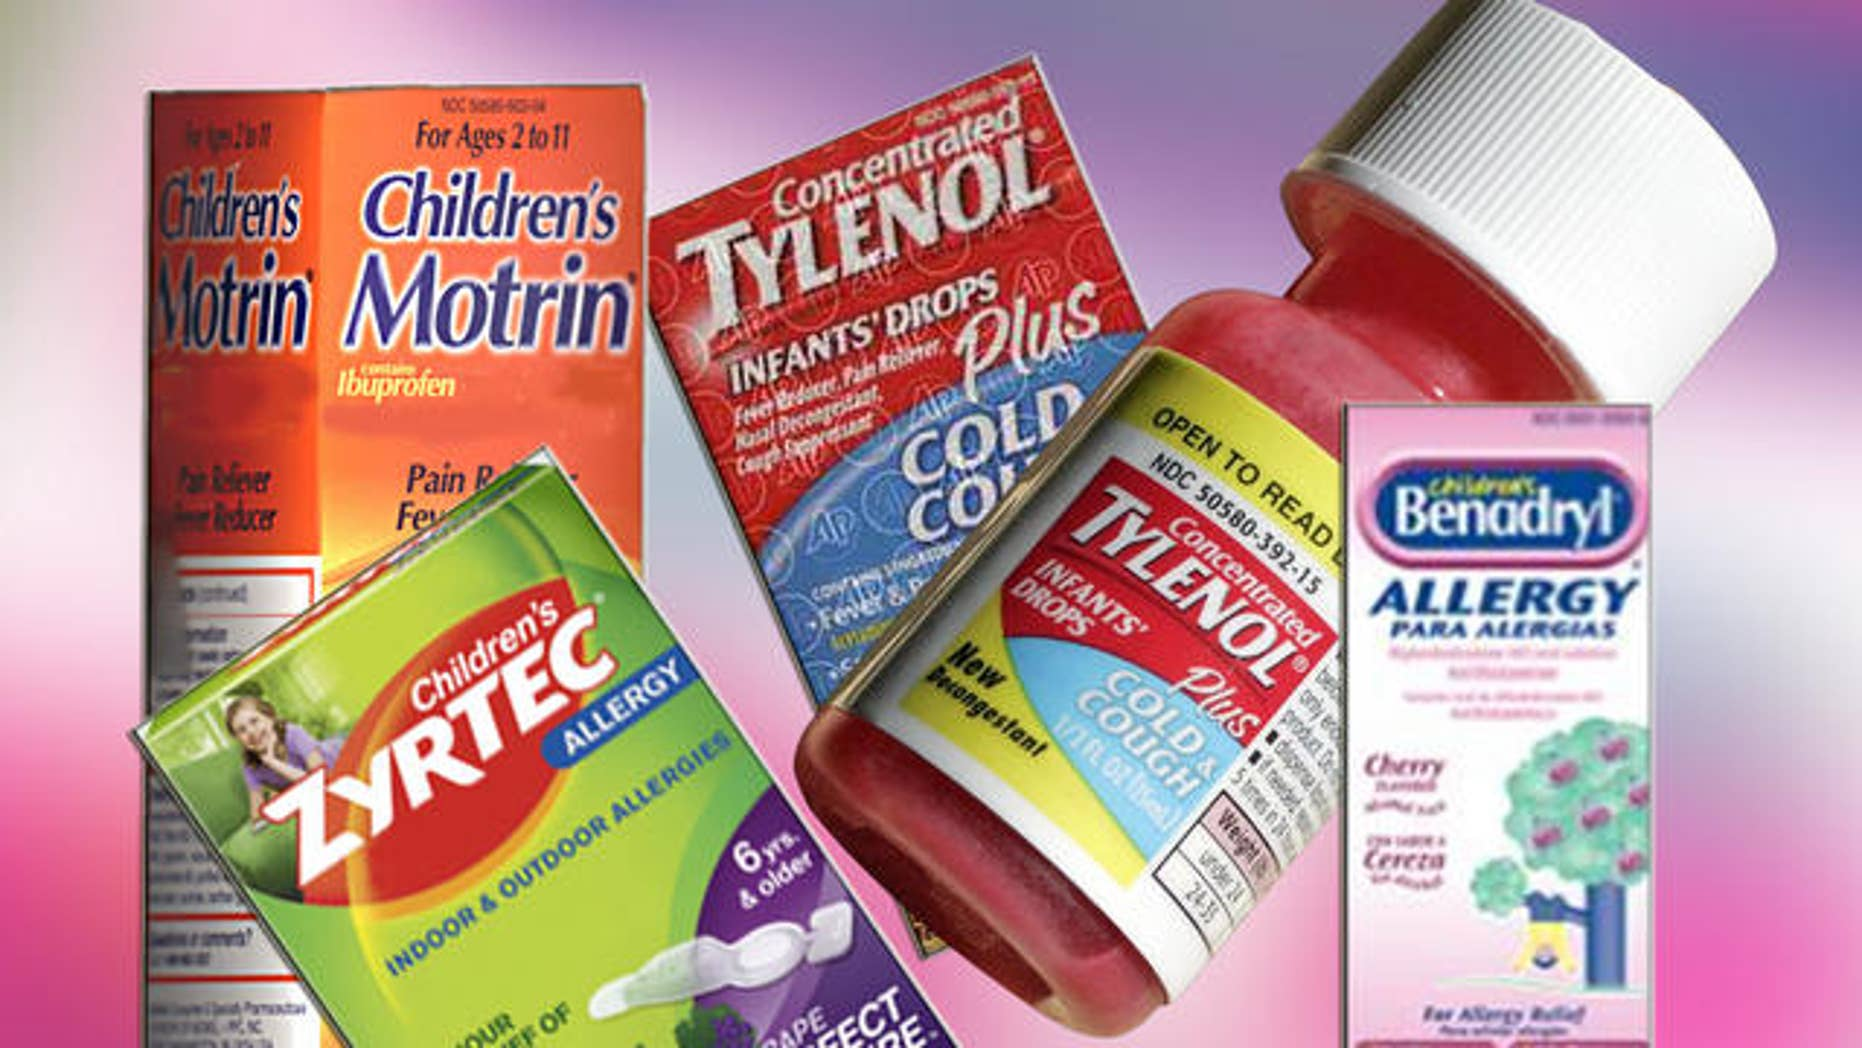 Parents Still Giving Children Under 2 Over-the-Counter Medication